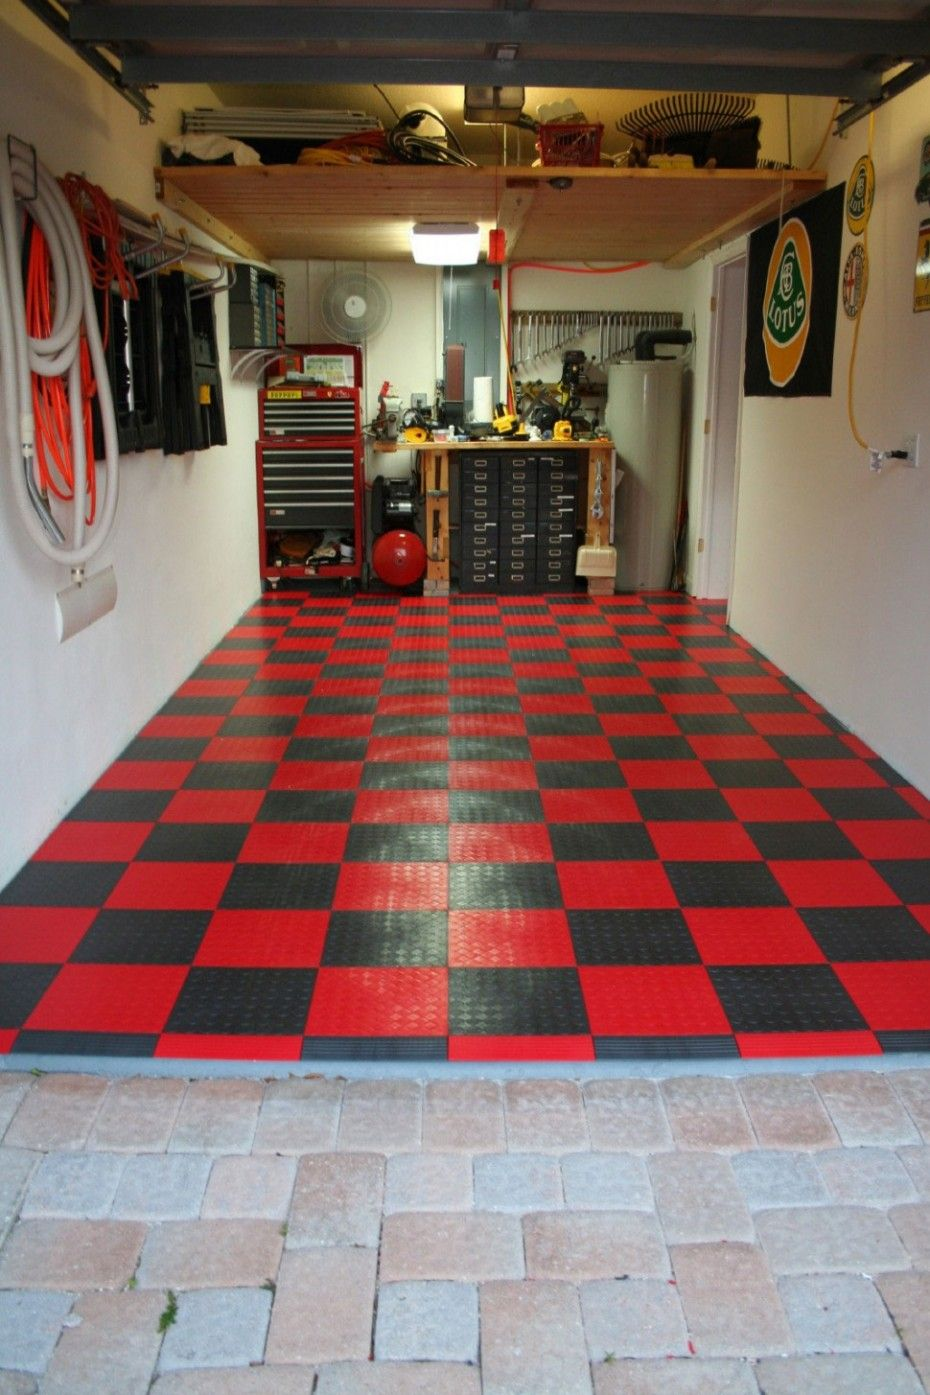 Cool garage ideas custom garage design for Garage designs interior ideas